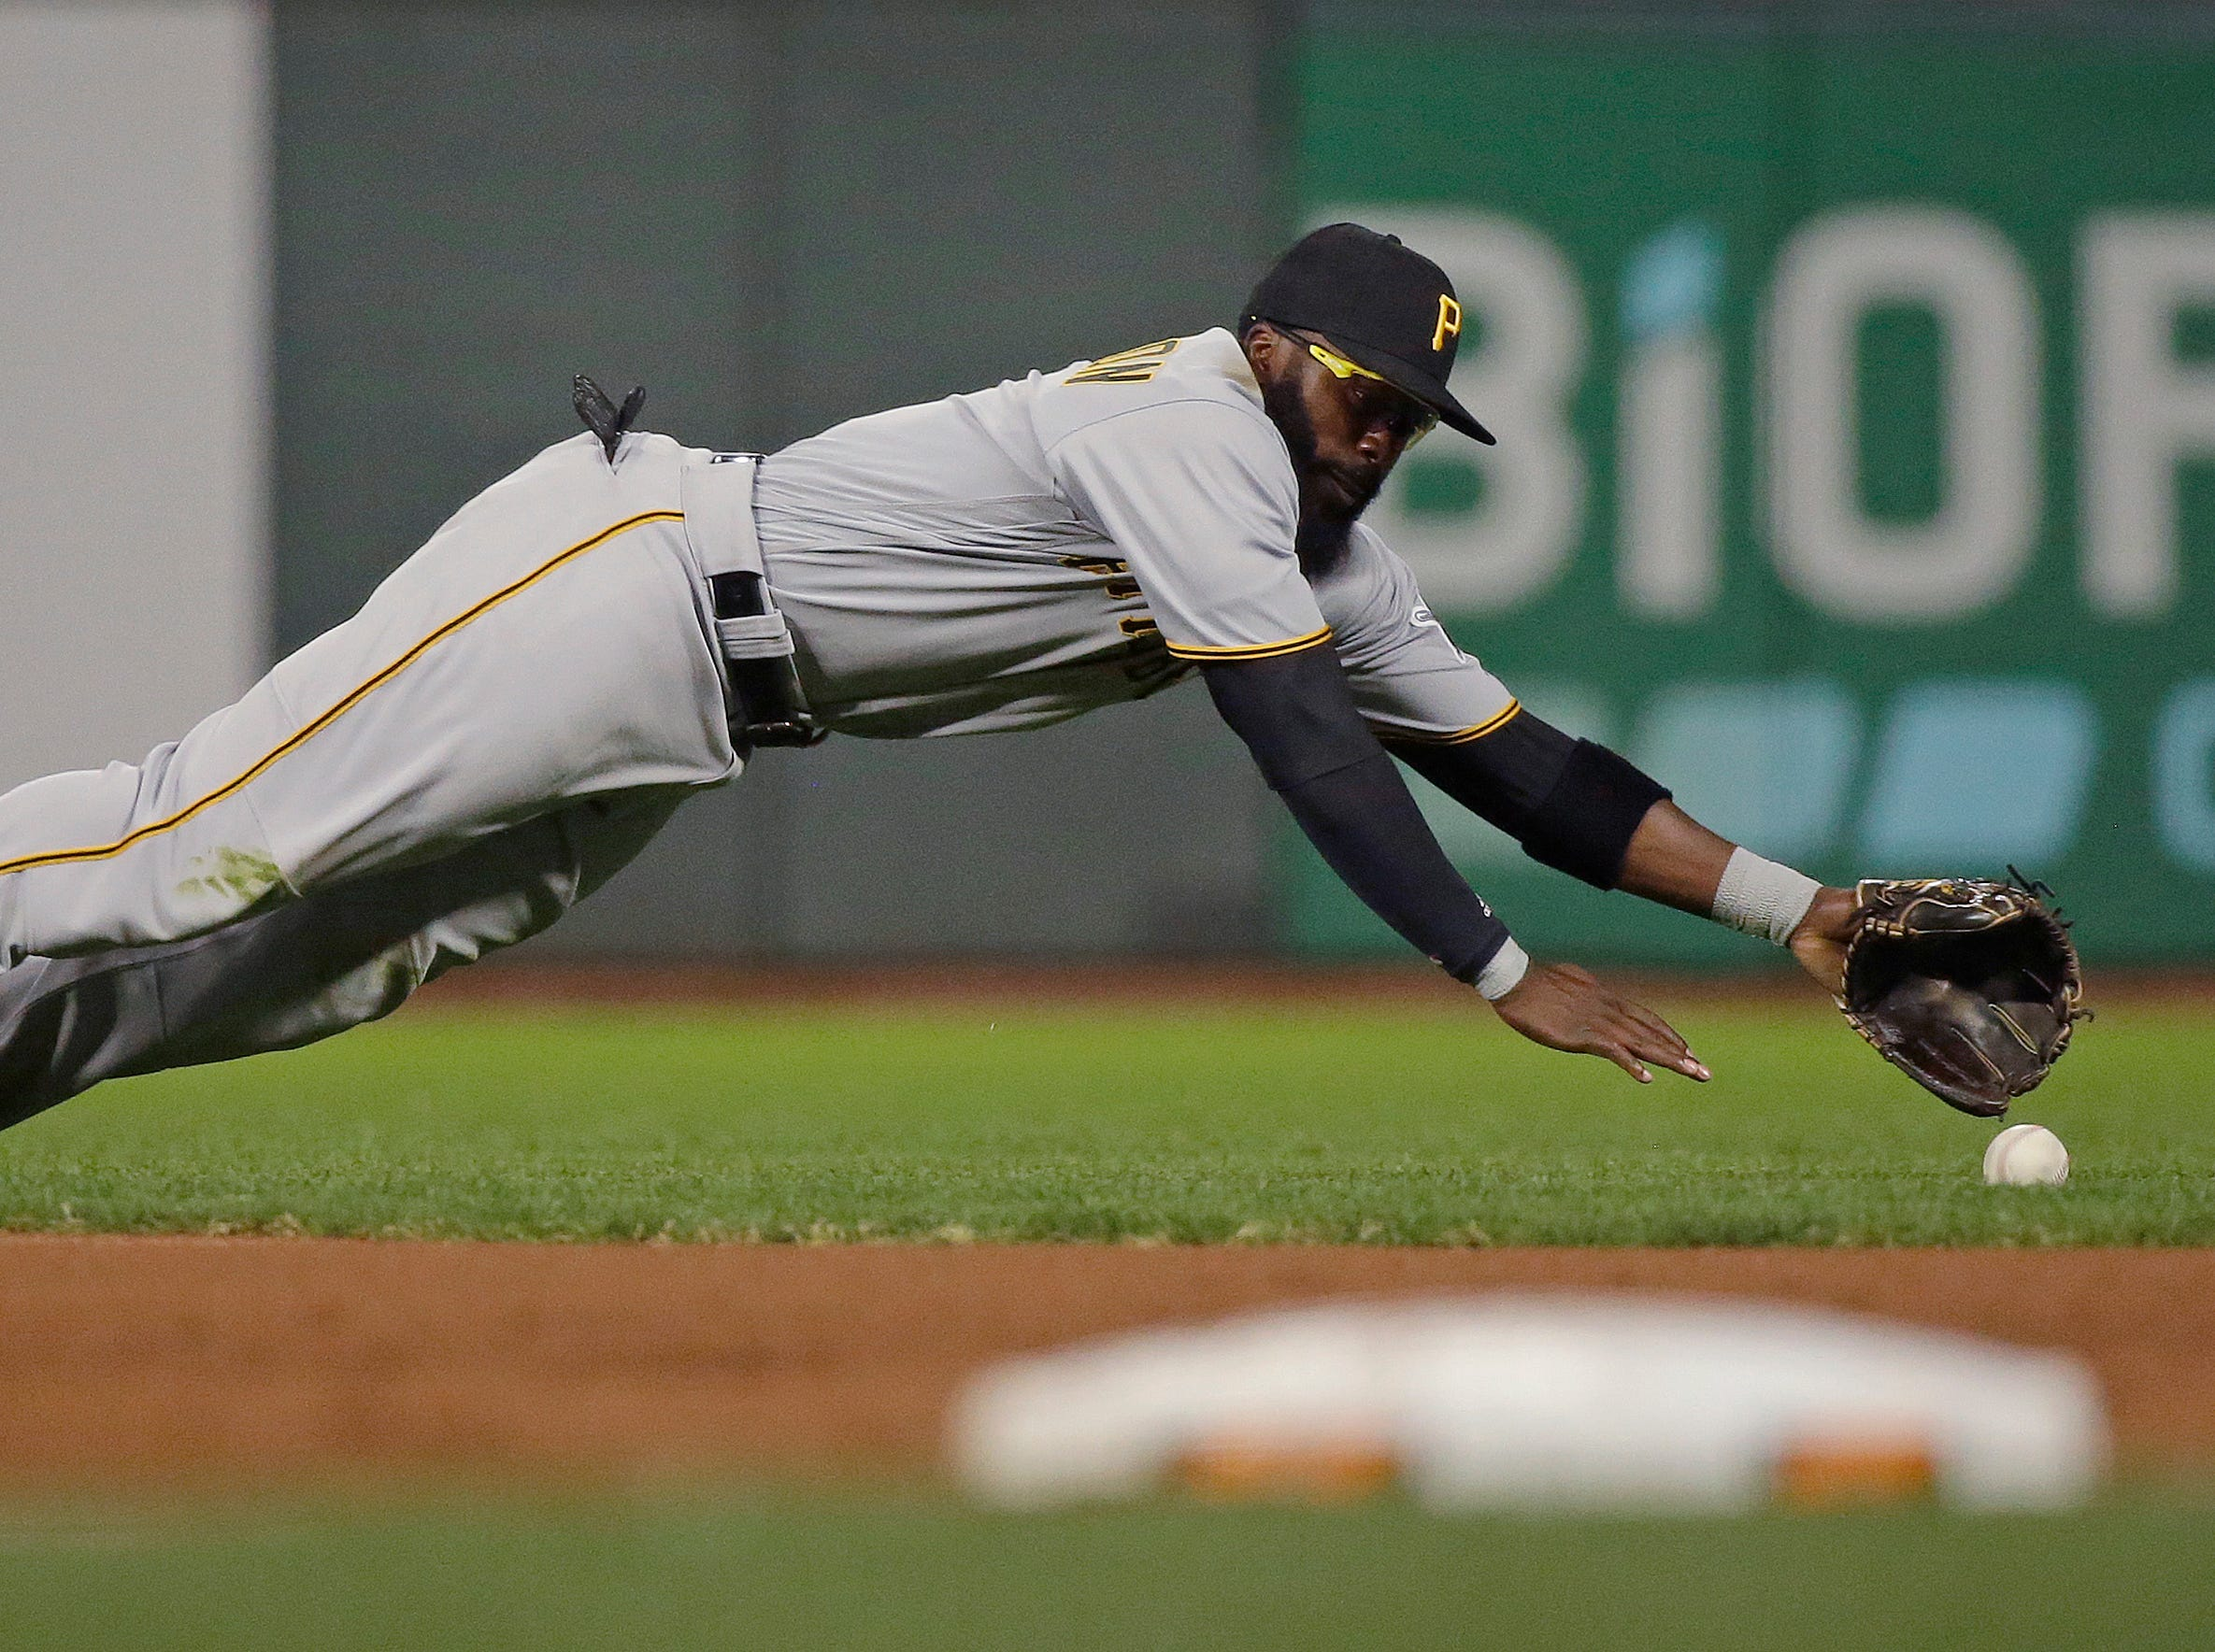 Pittsburgh Pirates second baseman Josh Harrison dives to stop a ground ball hit by San Francisco Giants' Alen Hanson during the fourth inning of a baseball game Friday, Aug. 10, 2018, in San Francisco.